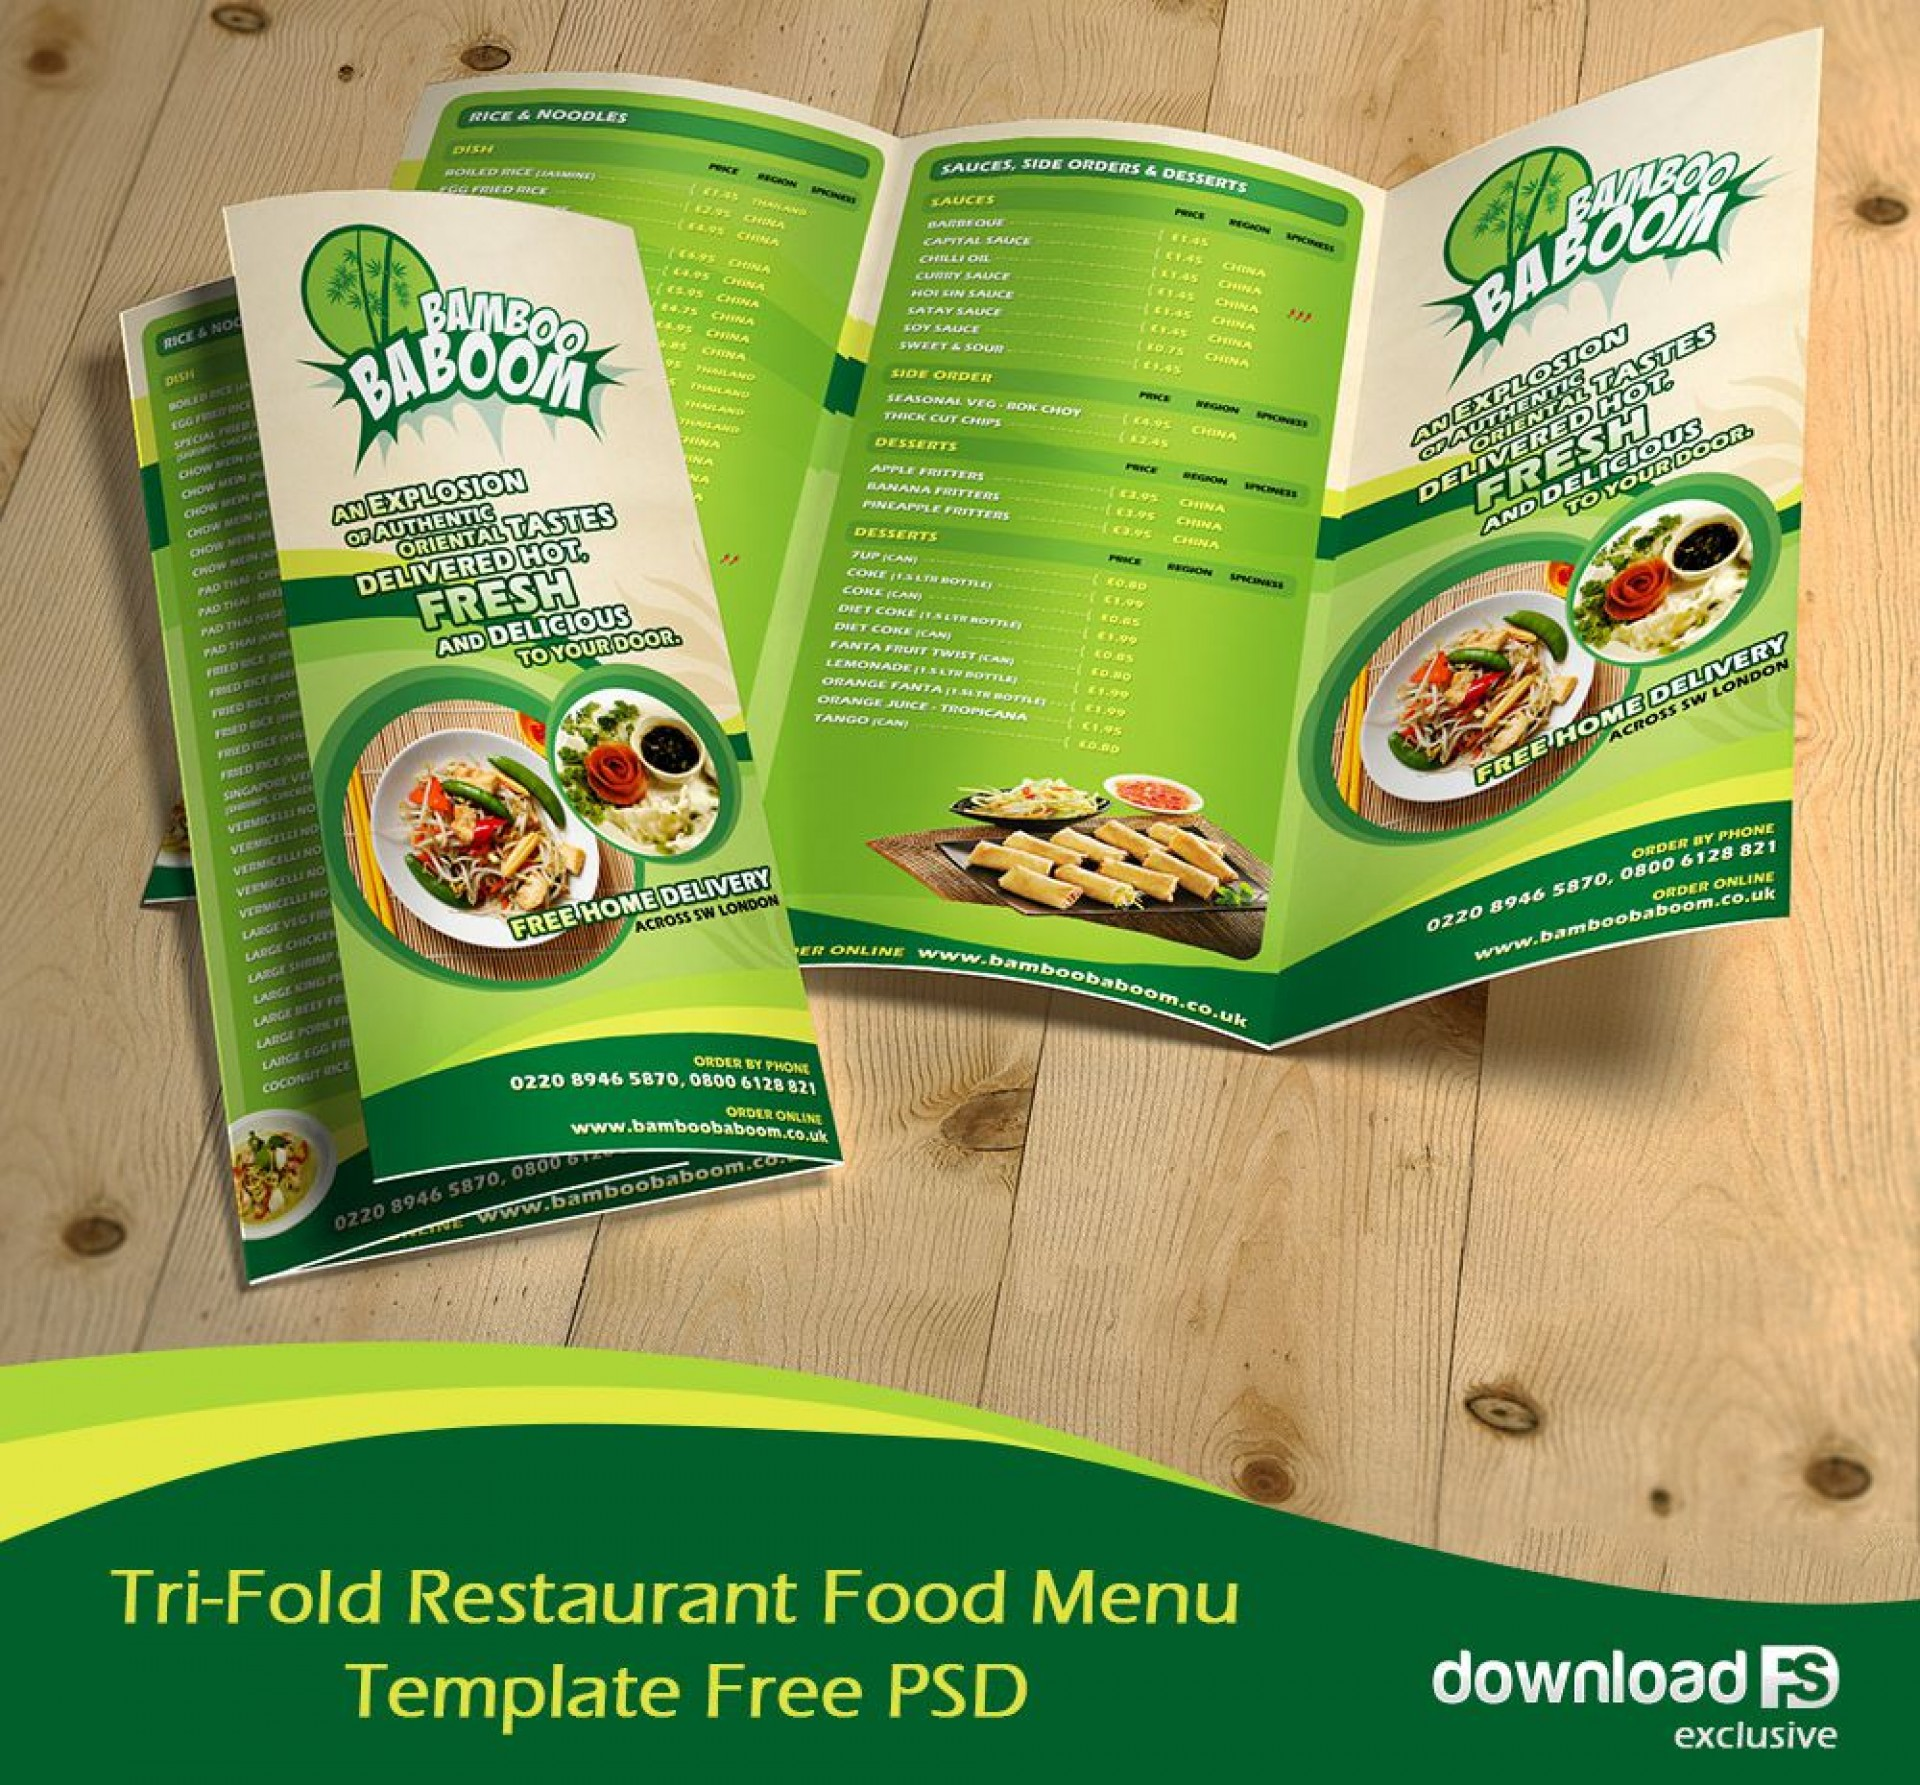 002 Magnificent Tri Fold Menu Template Free Design  Wedding Tri-fold Restaurant Food Psd Brochure Cafe Download1920